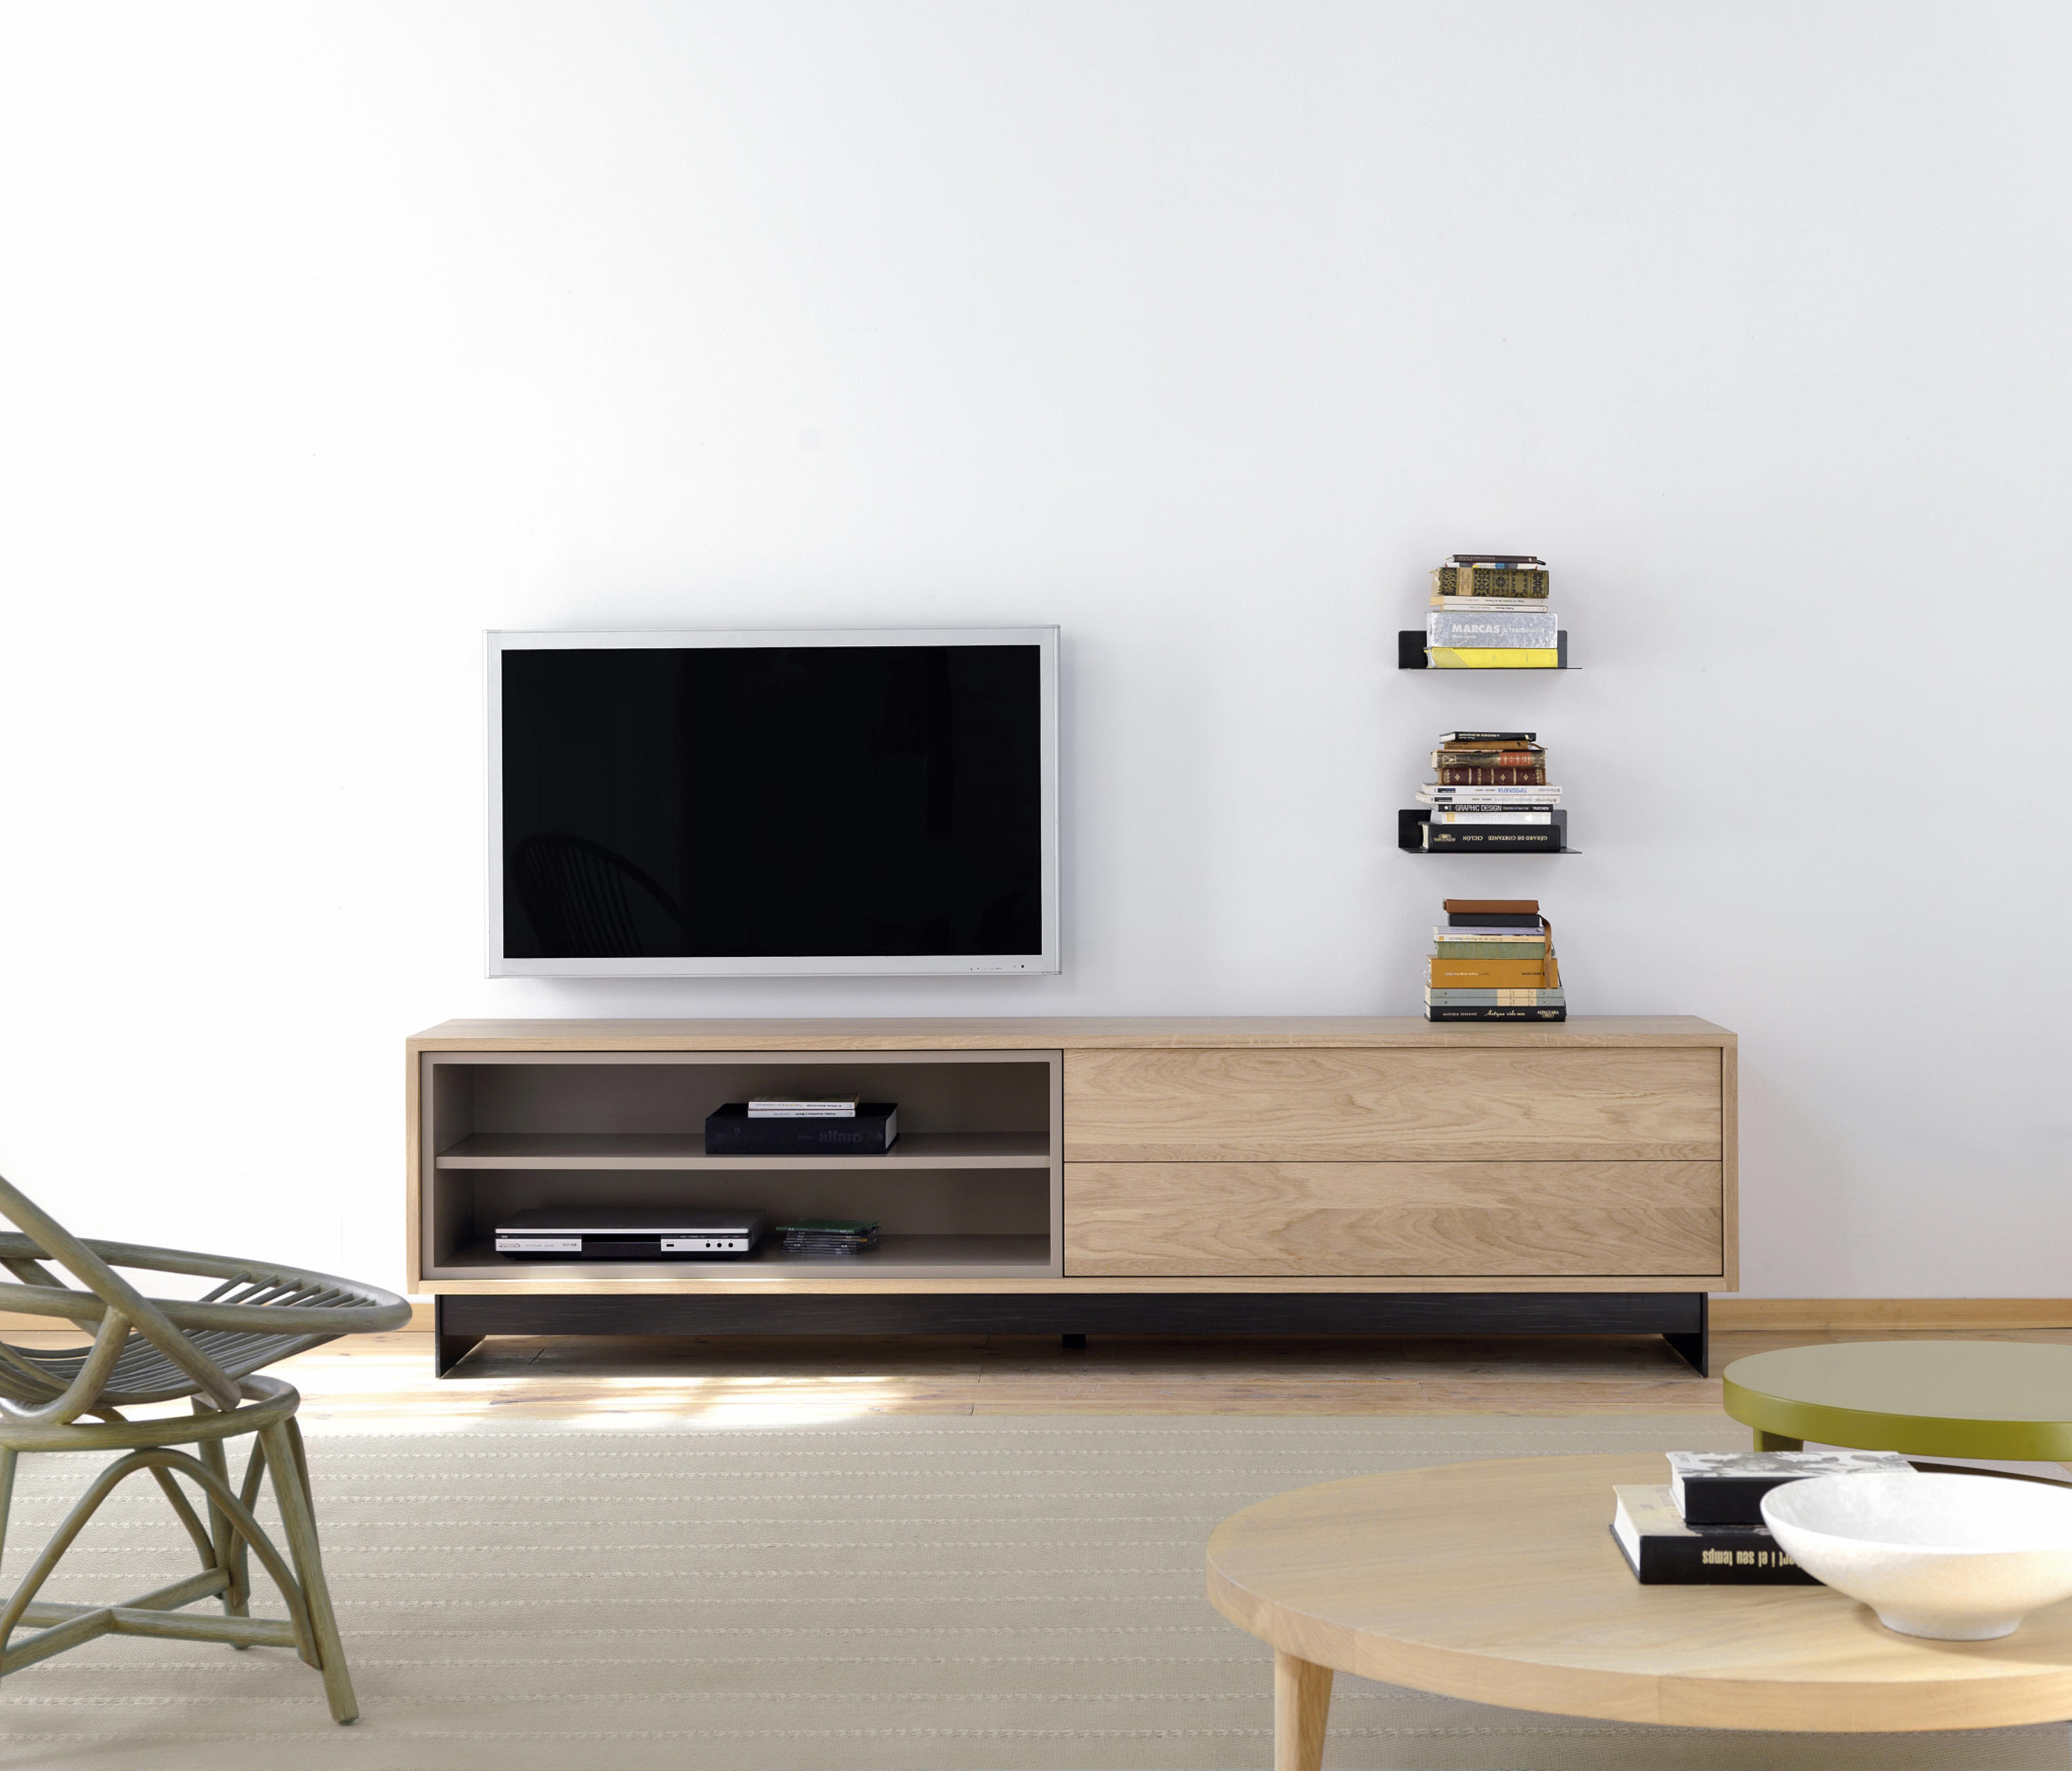 Basic 4 Door Module Sideboards From Expormim Architonic # Muebles Vendrell